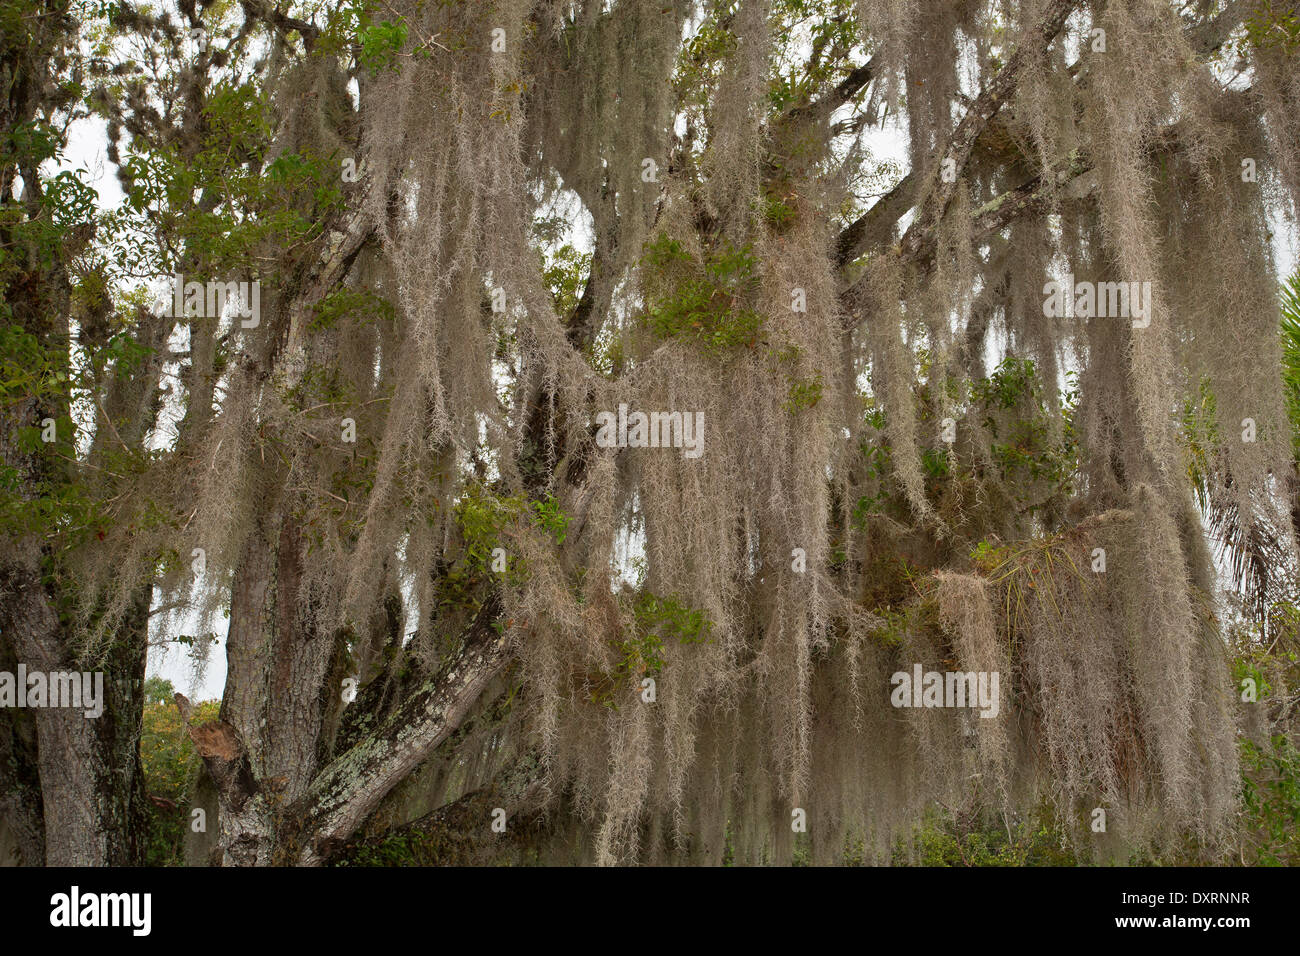 how to get spanish moss to grow on trees